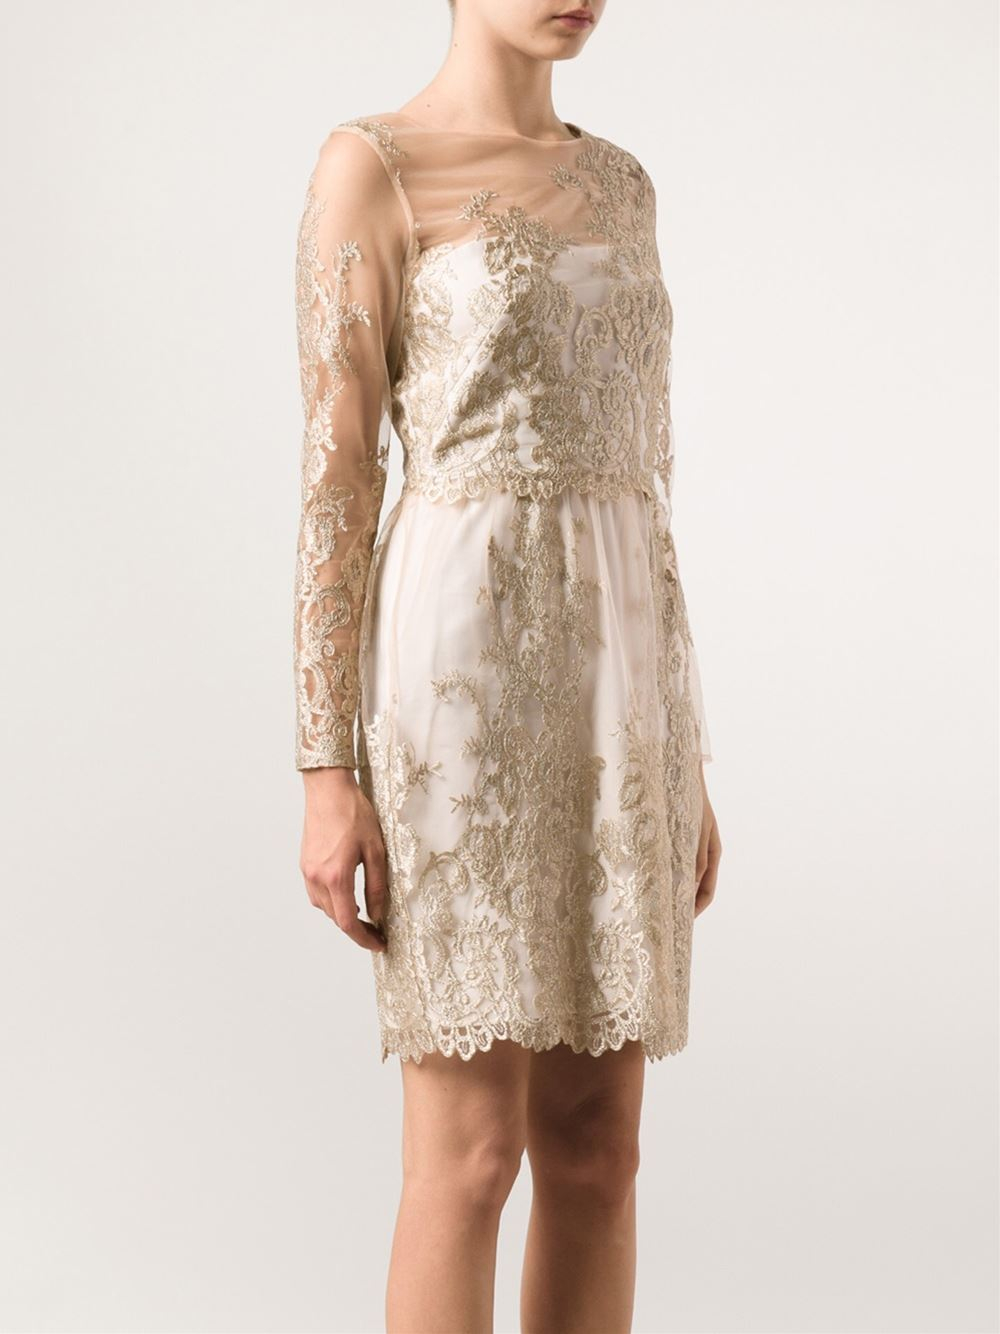 ac4637f6 Gallery. Previously sold at: Farfetch · Women's White Cocktail Dresses